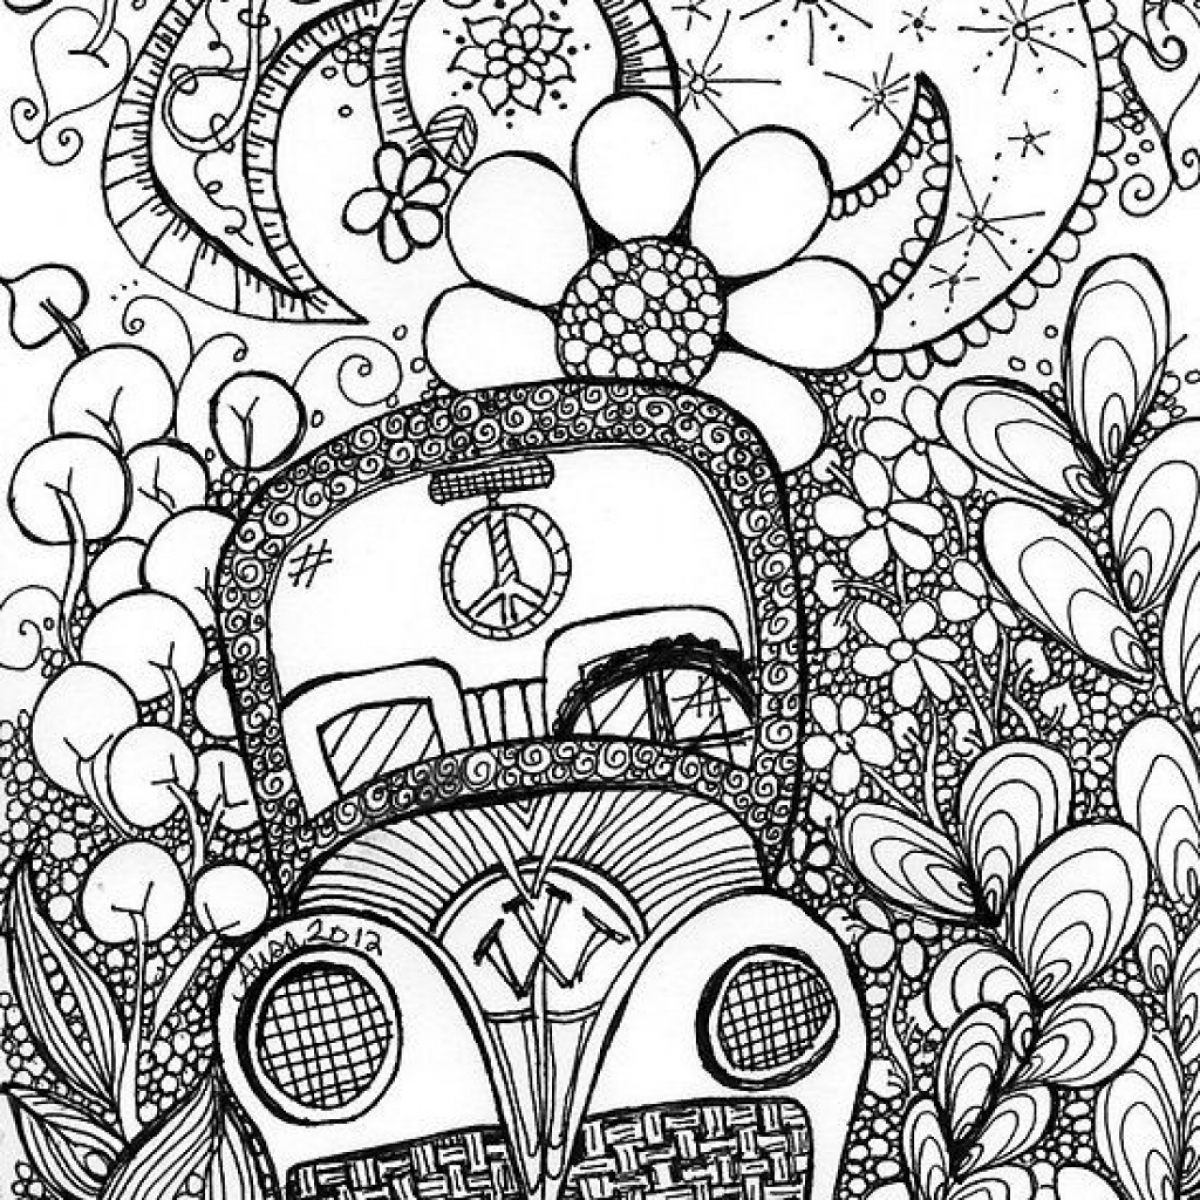 trippy coloring pages printable psychedelic pattern coloring page free printable coloring printable trippy pages